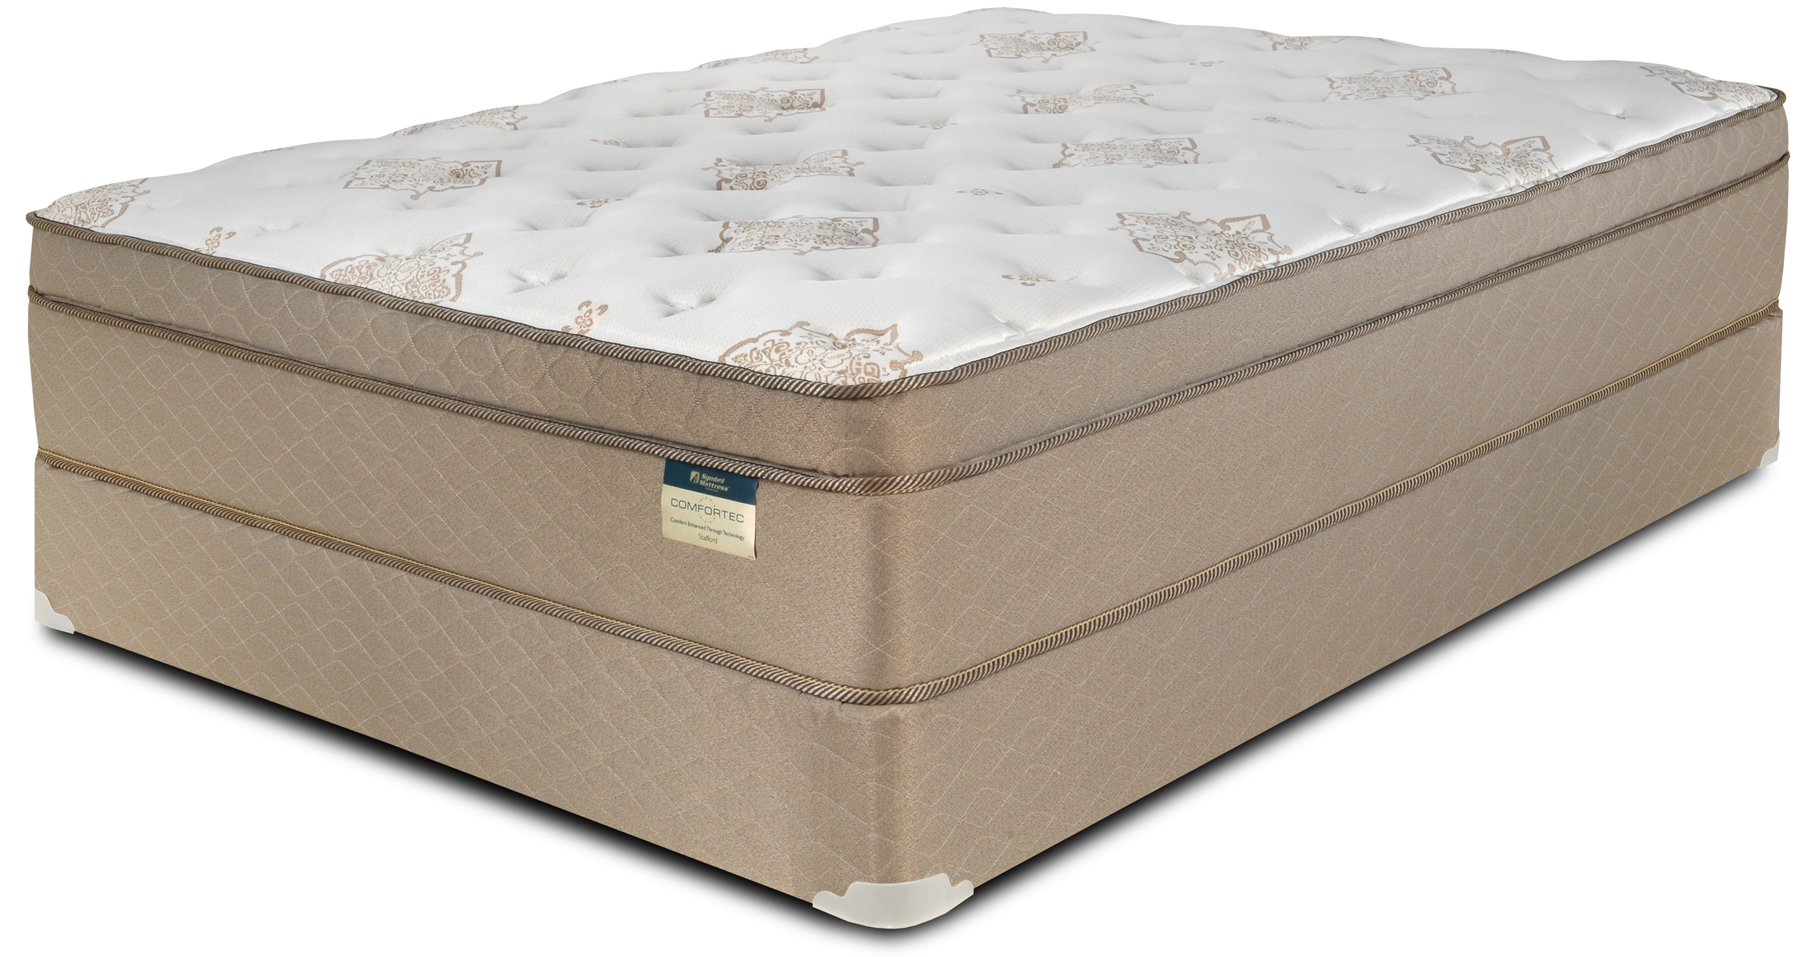 Memory foam euro pillow top mattresses for Which mattress company is the best